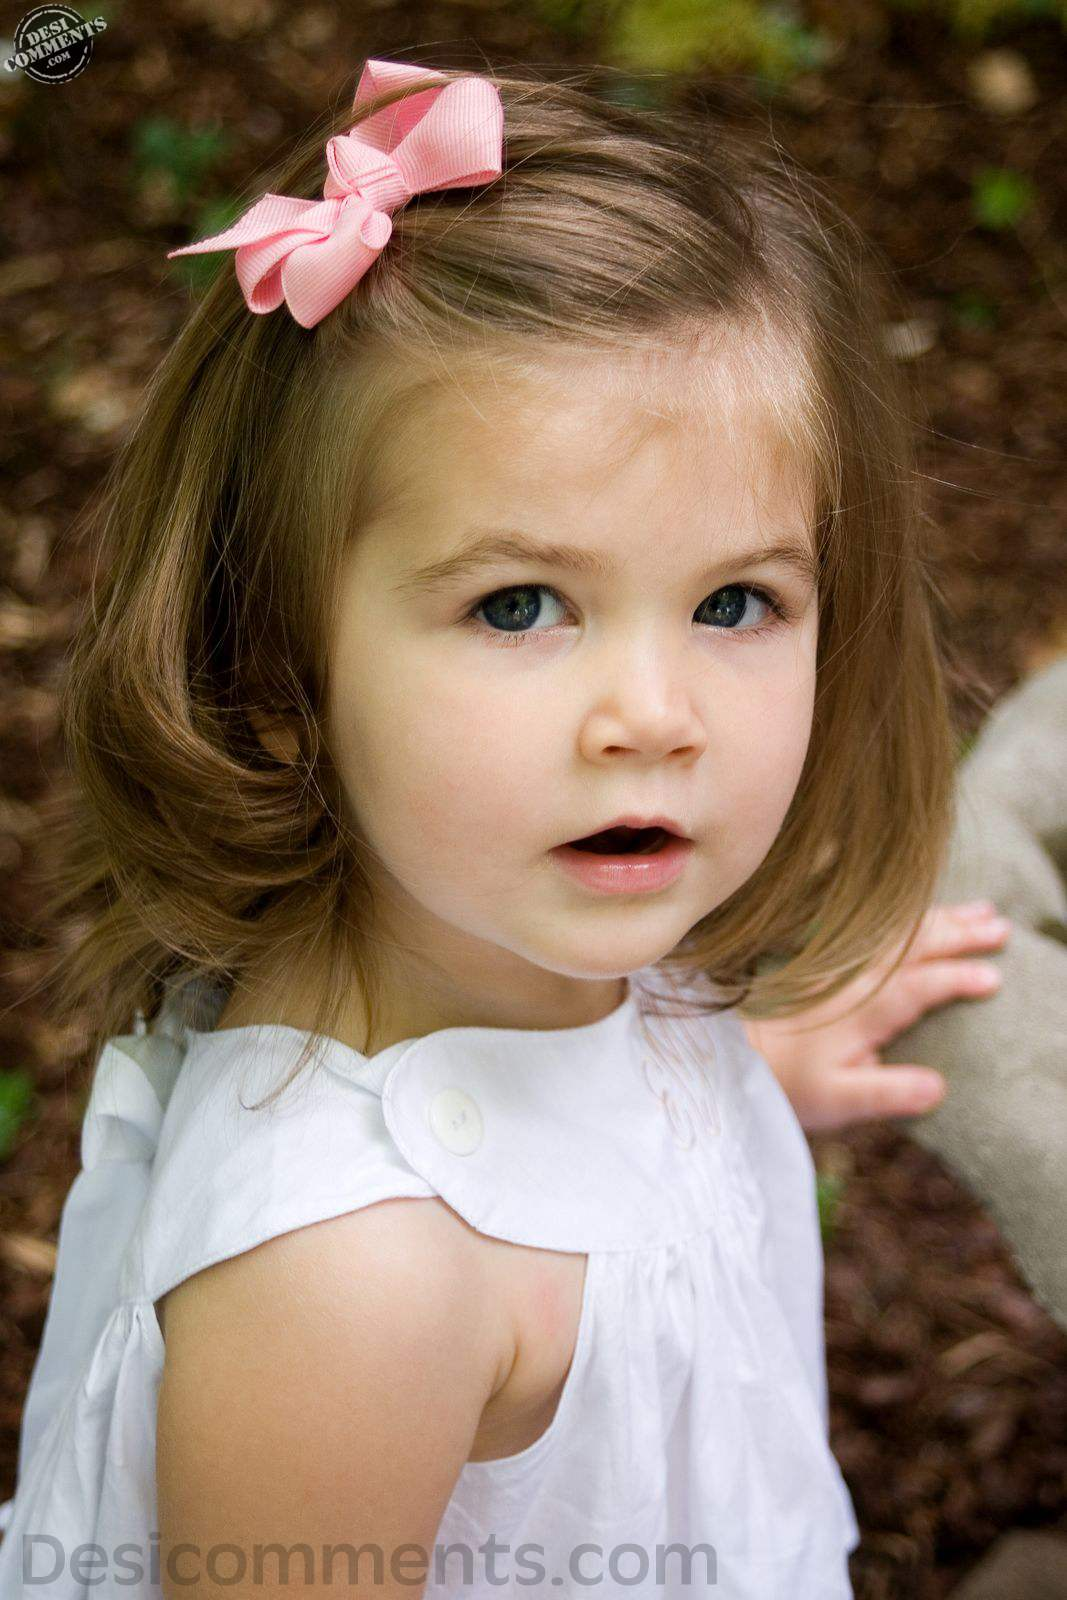 Cute Baby Girl Desicomments Com